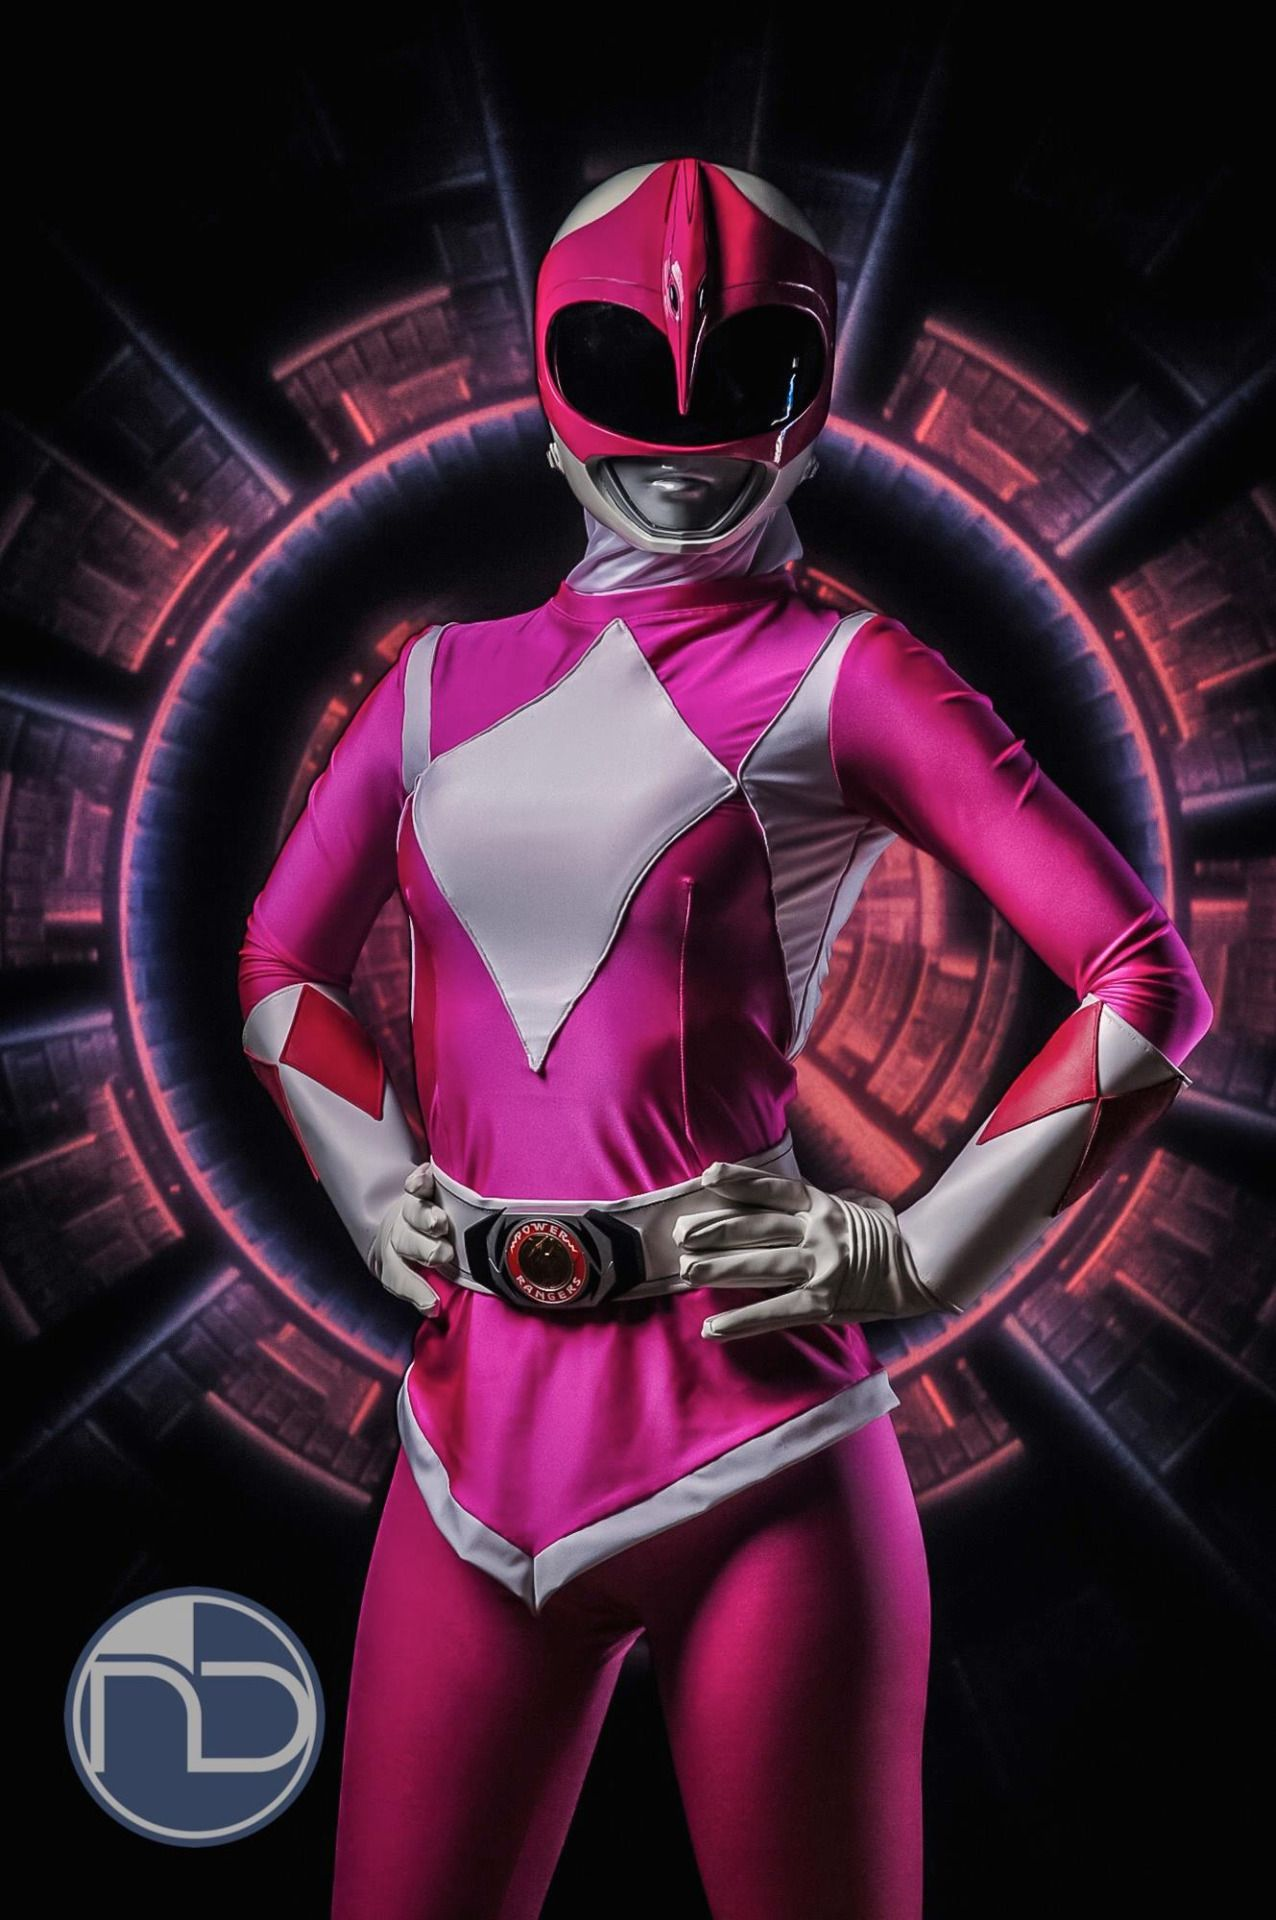 Pink Ranger From Mighty Morphin Power Rangers By